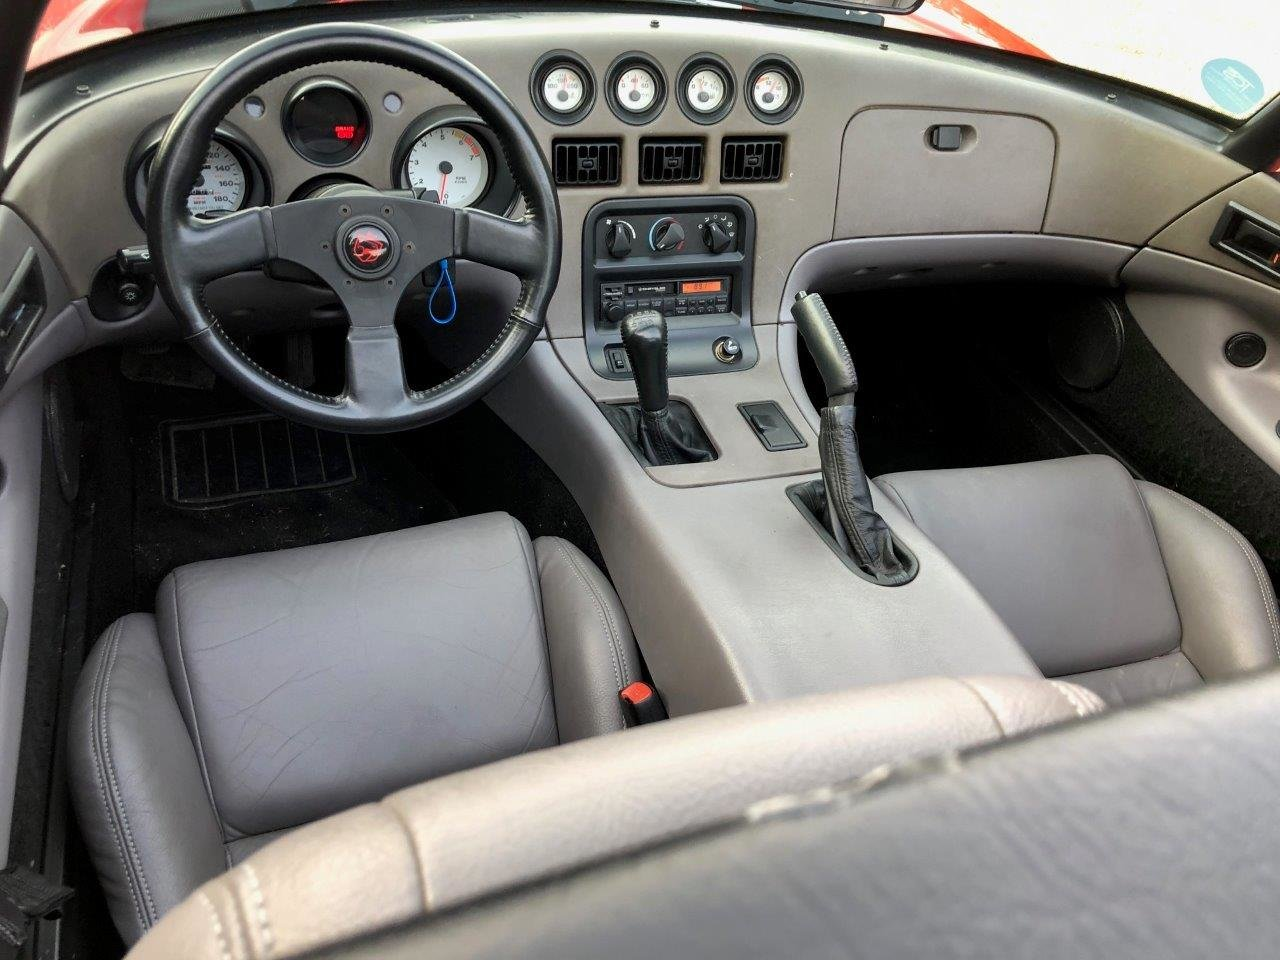 1992 Dodge Viper RT/10 8.0L V10 400bhp 6-Speed Manual For Sale (picture 6 of 6)